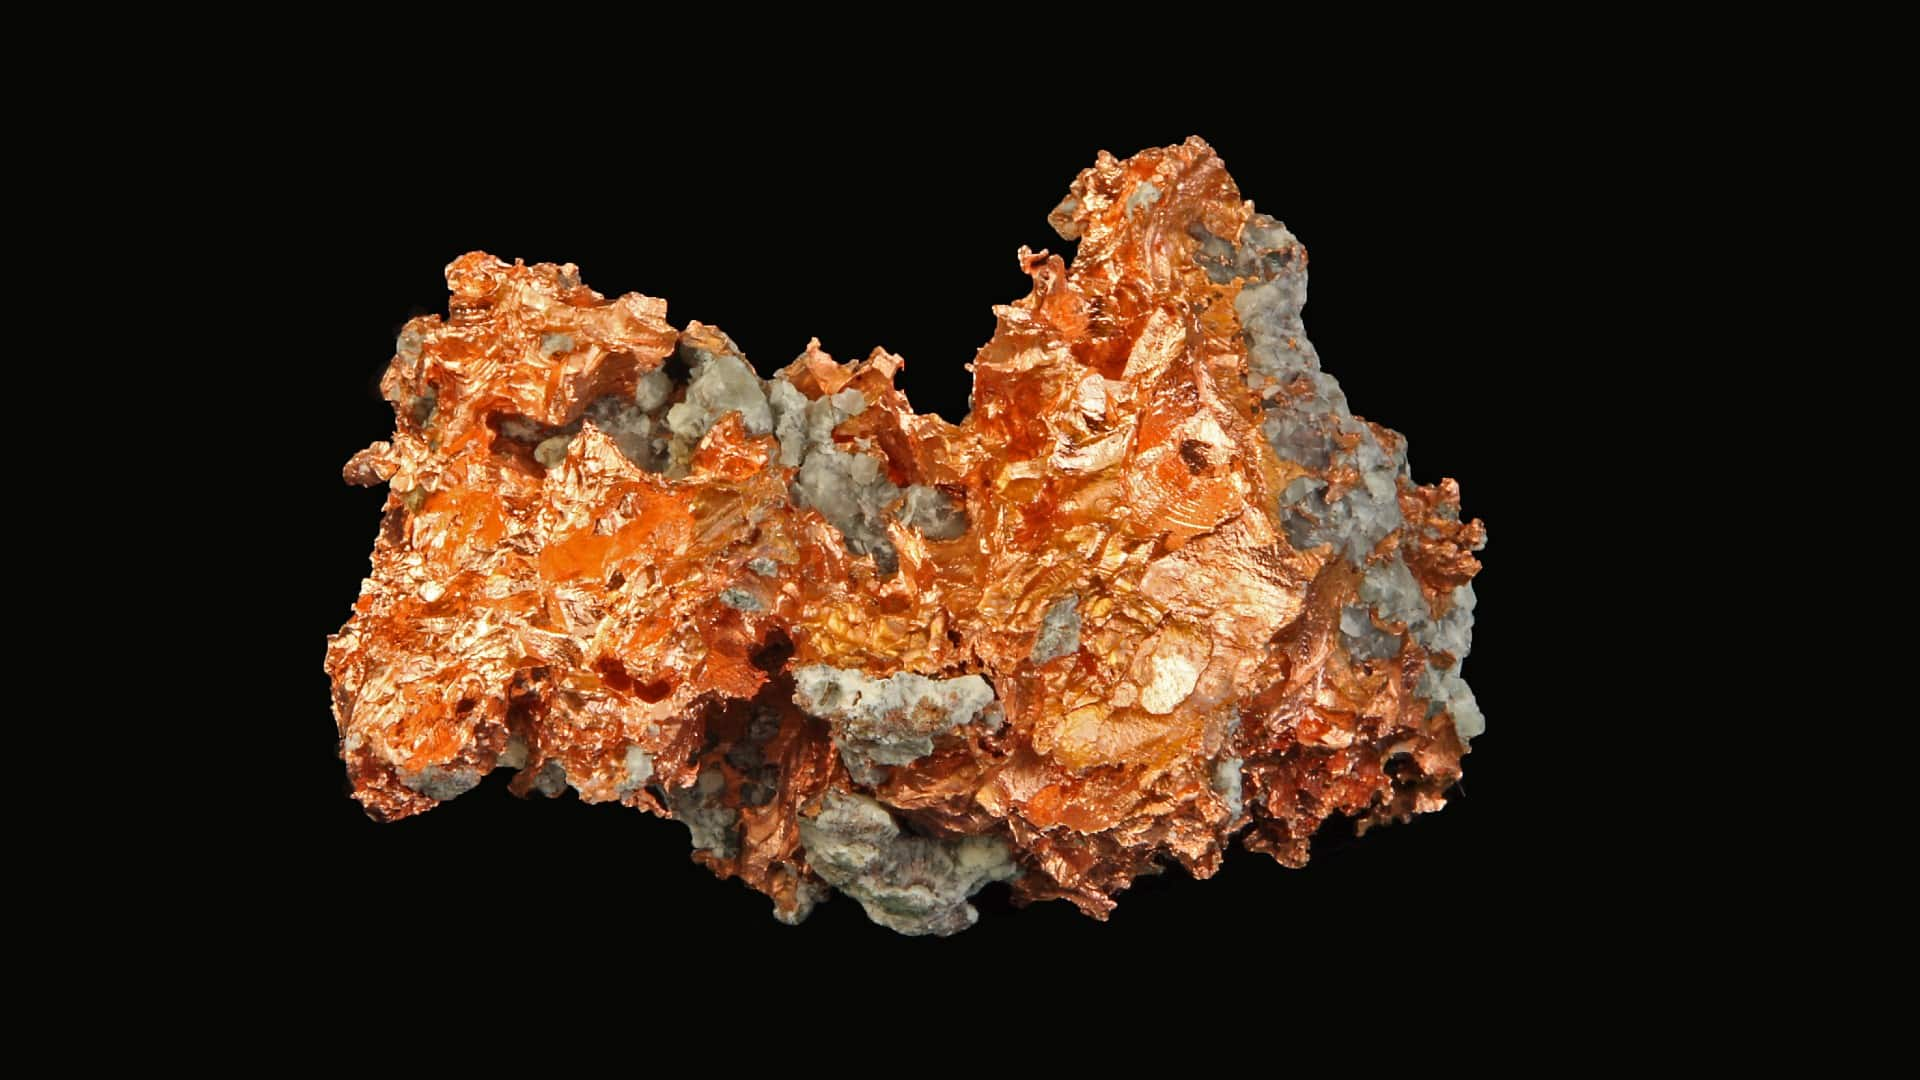 asx copper share price represented by chunk of mined copper